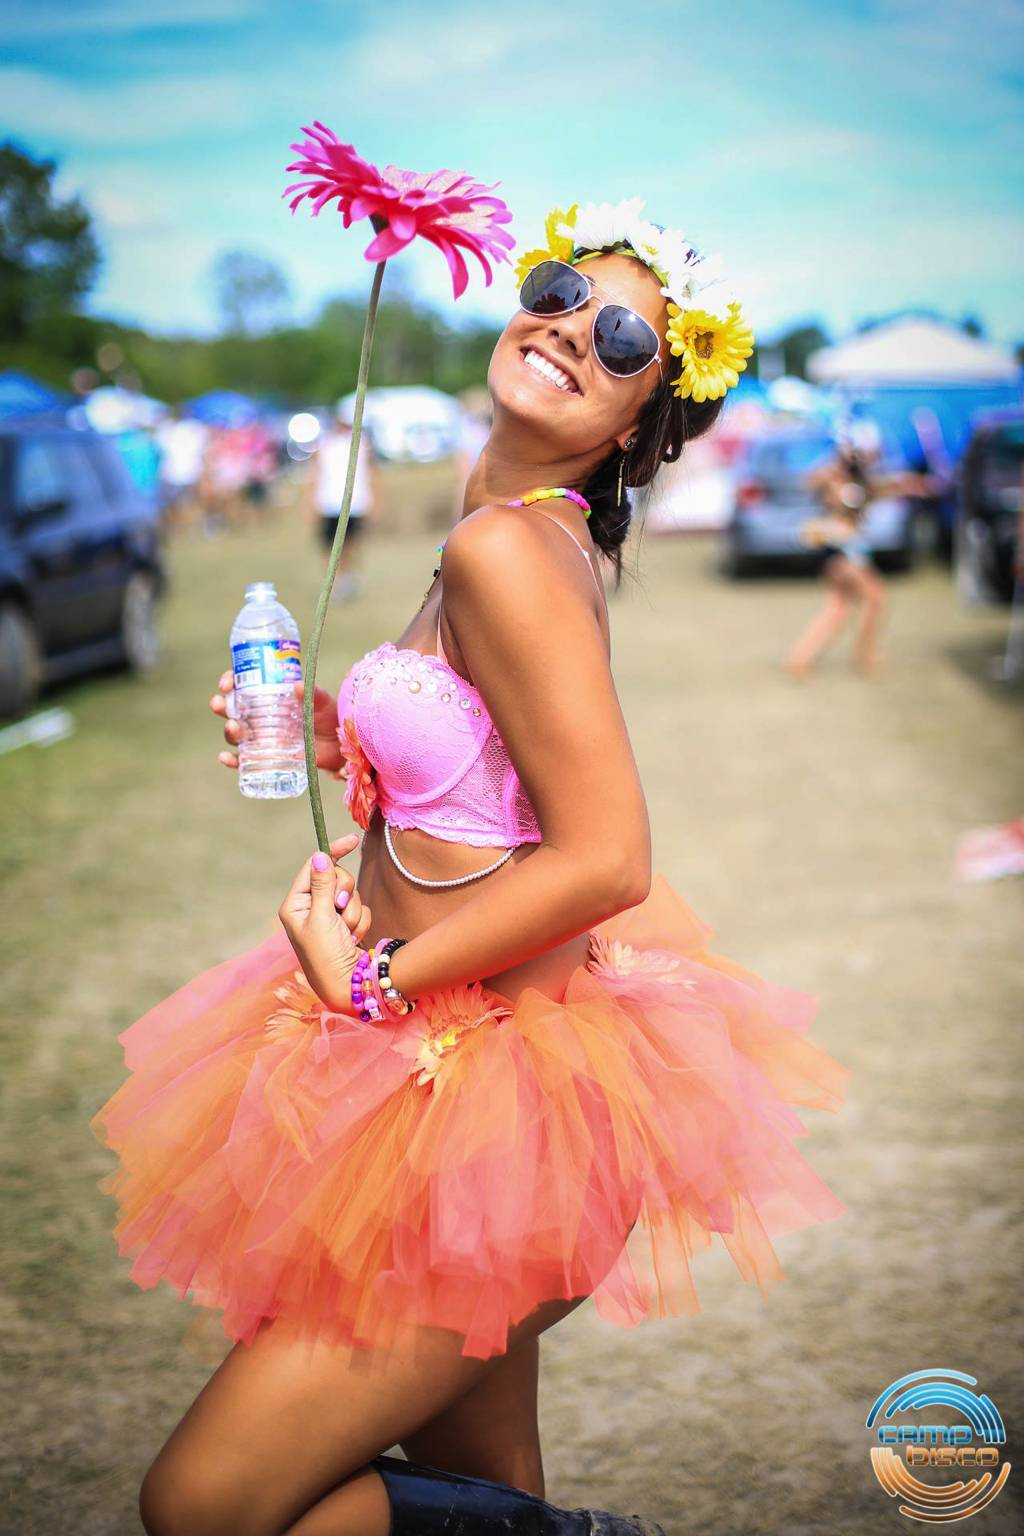 The Hottest Ravers Of Camp Bisco 2013 | Daily Girls @ Female Update